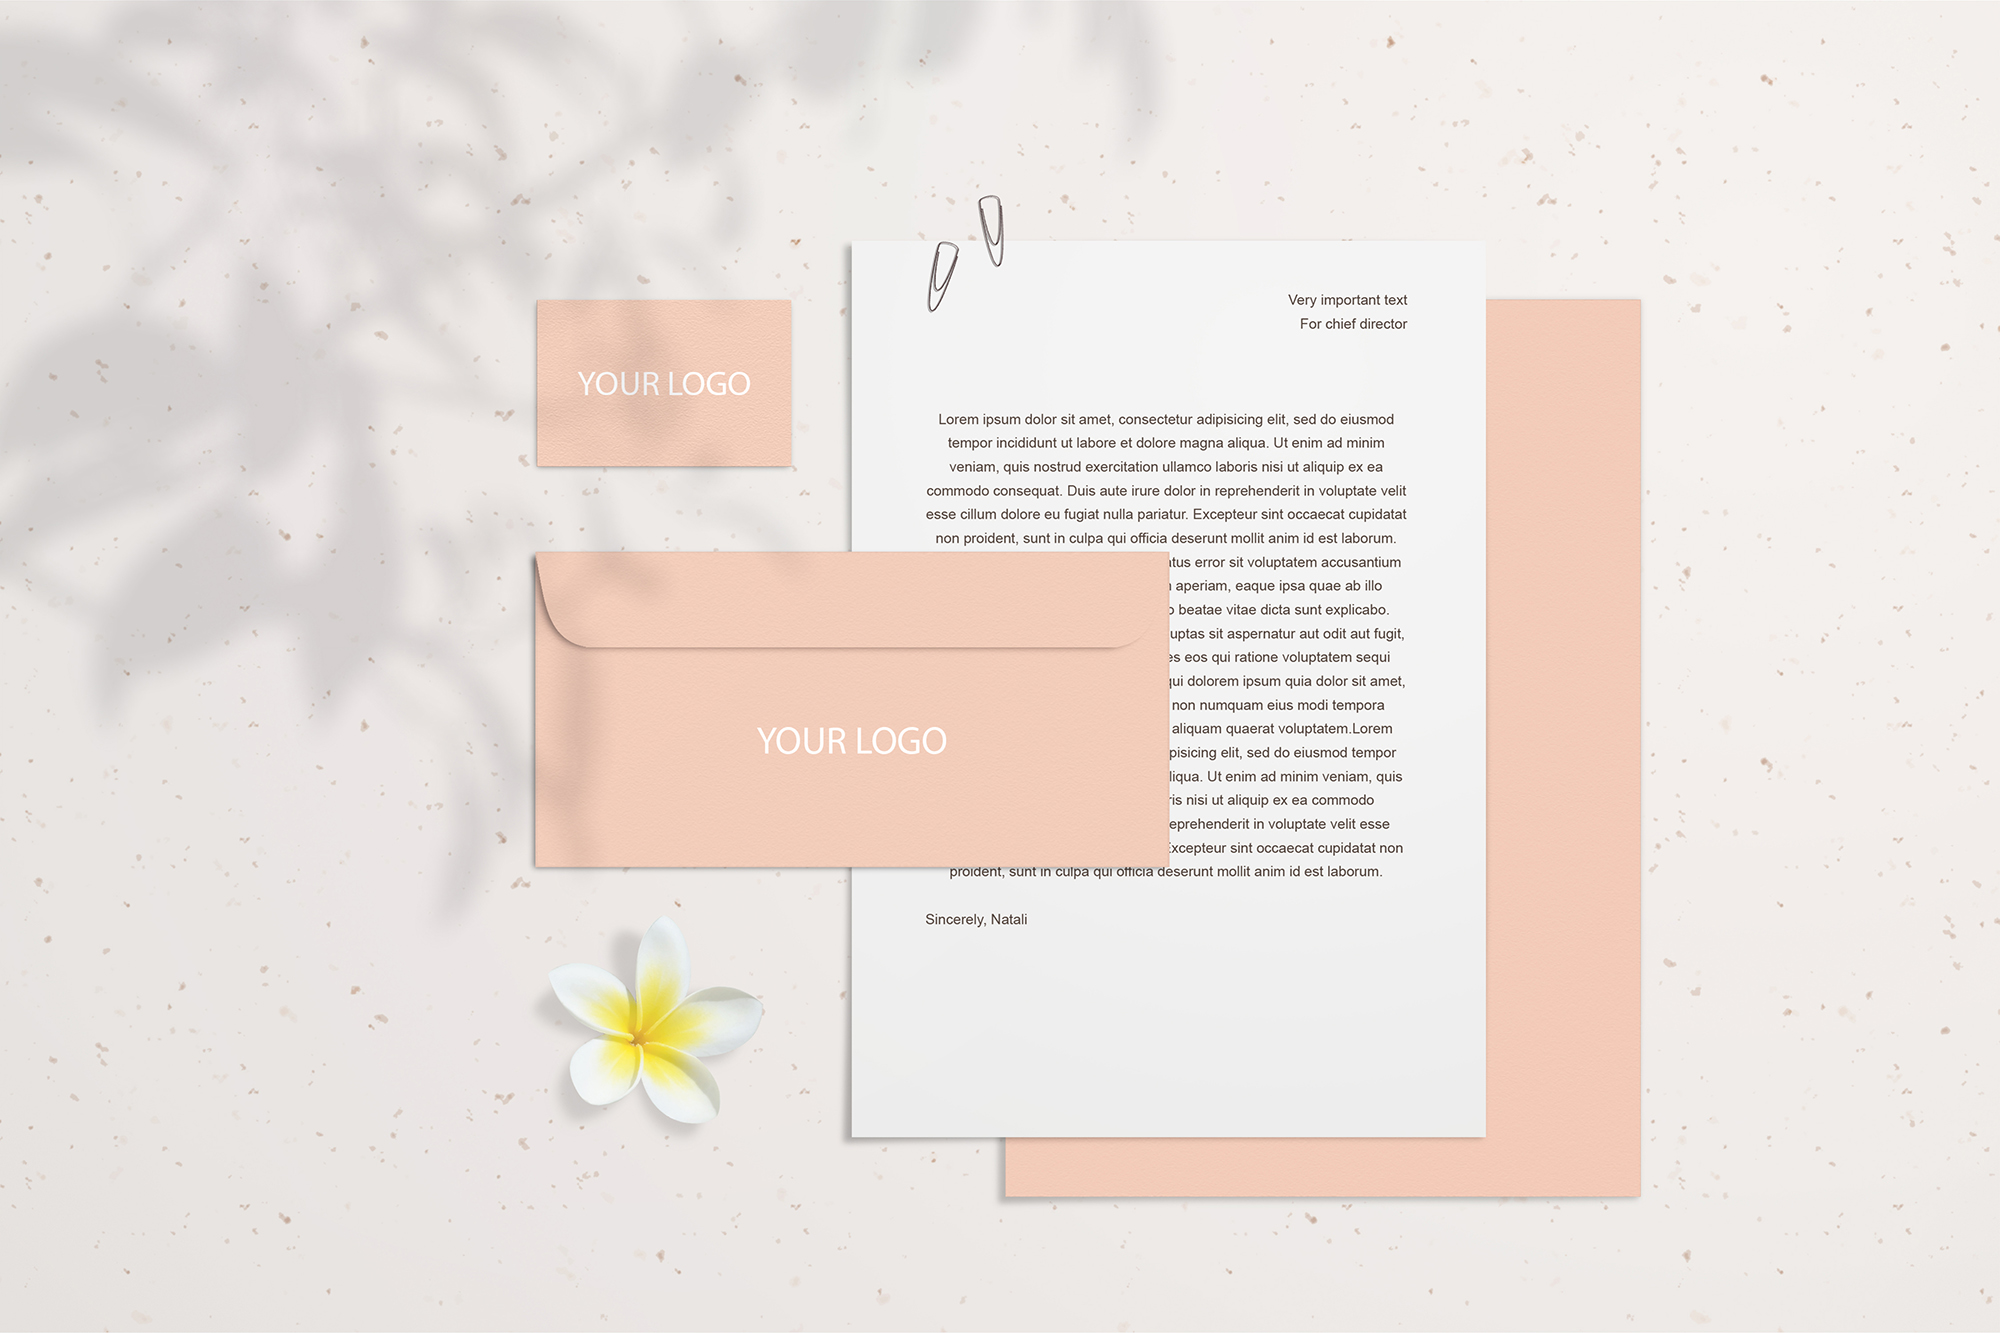 Summer Stationery Branding Mockup with Shadows example image 4